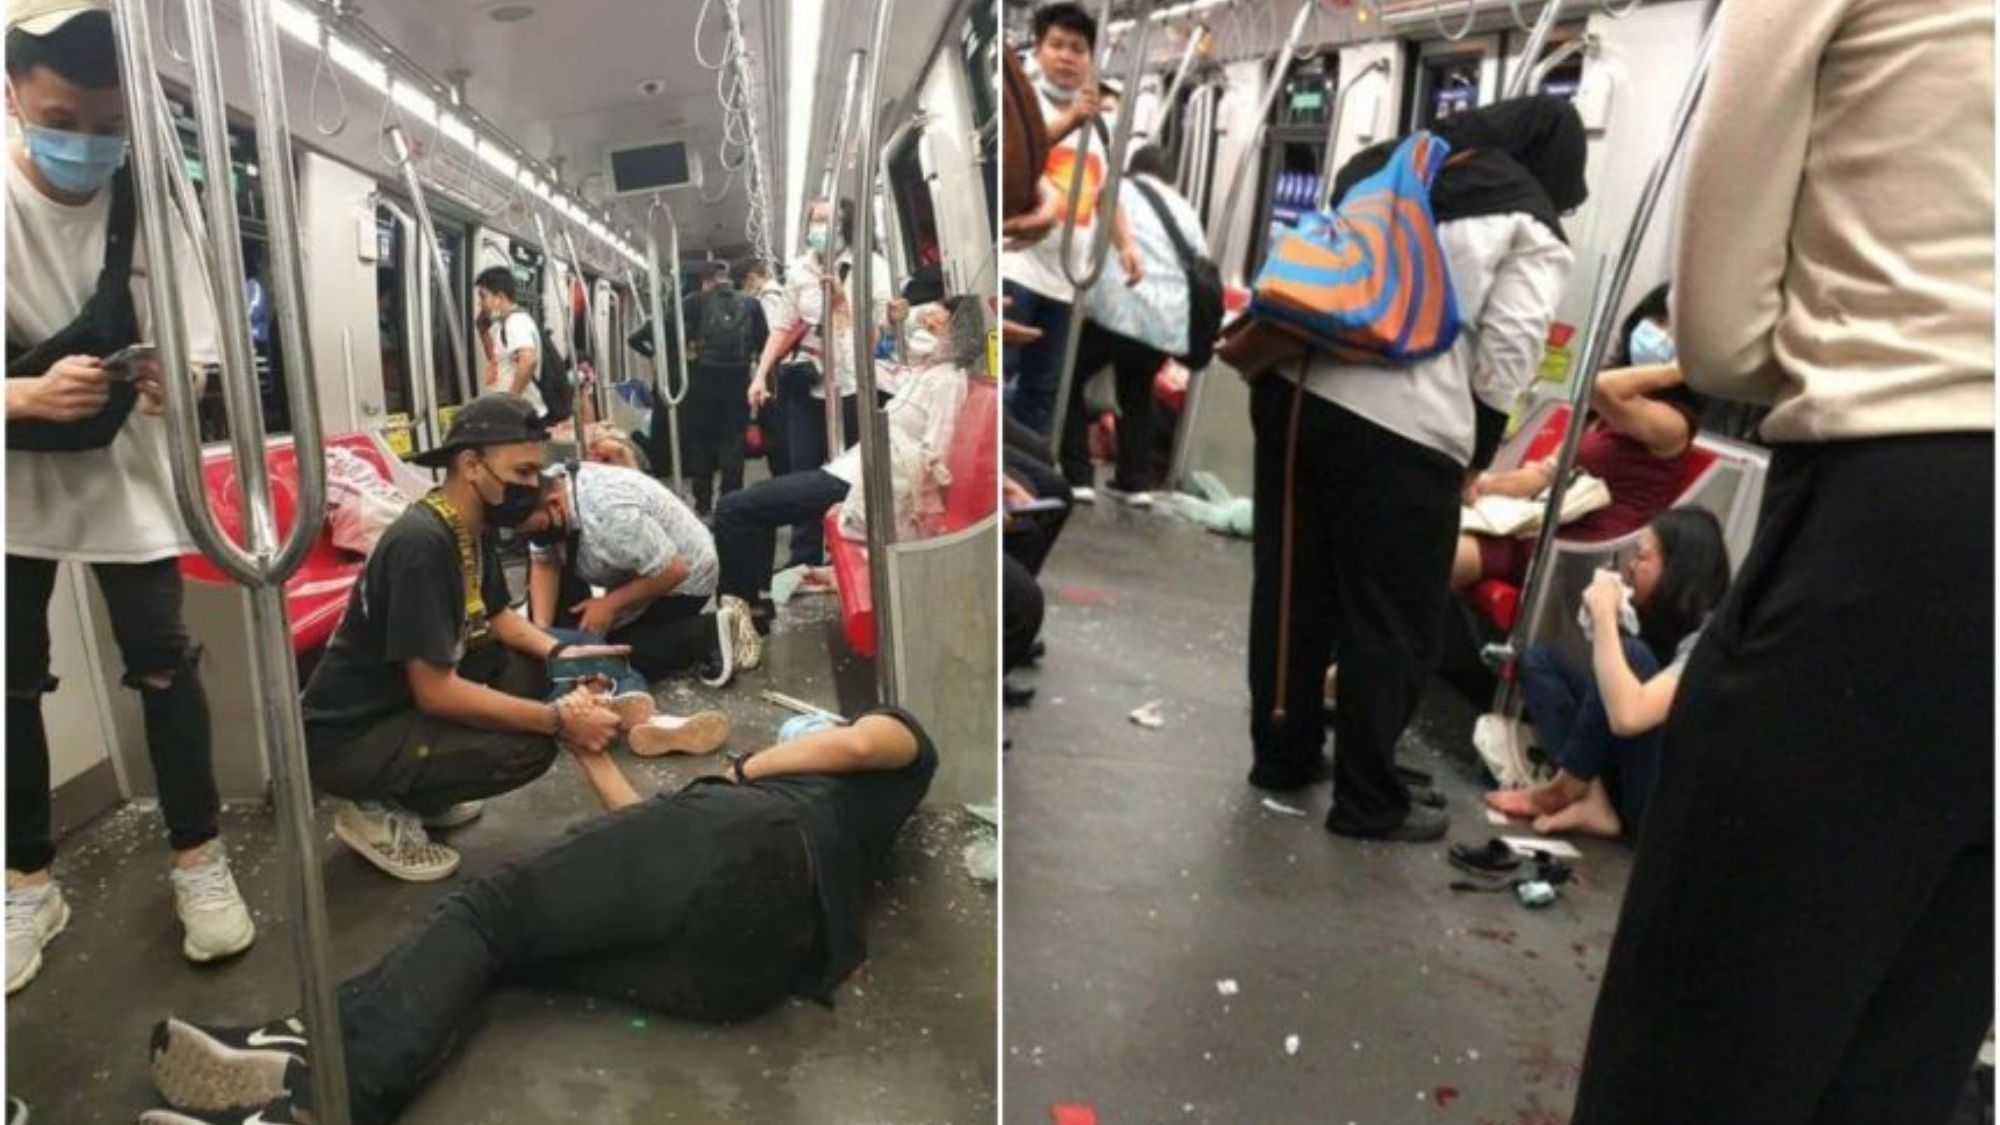 Hundreds injured after trains collide in Kuala Lumpur